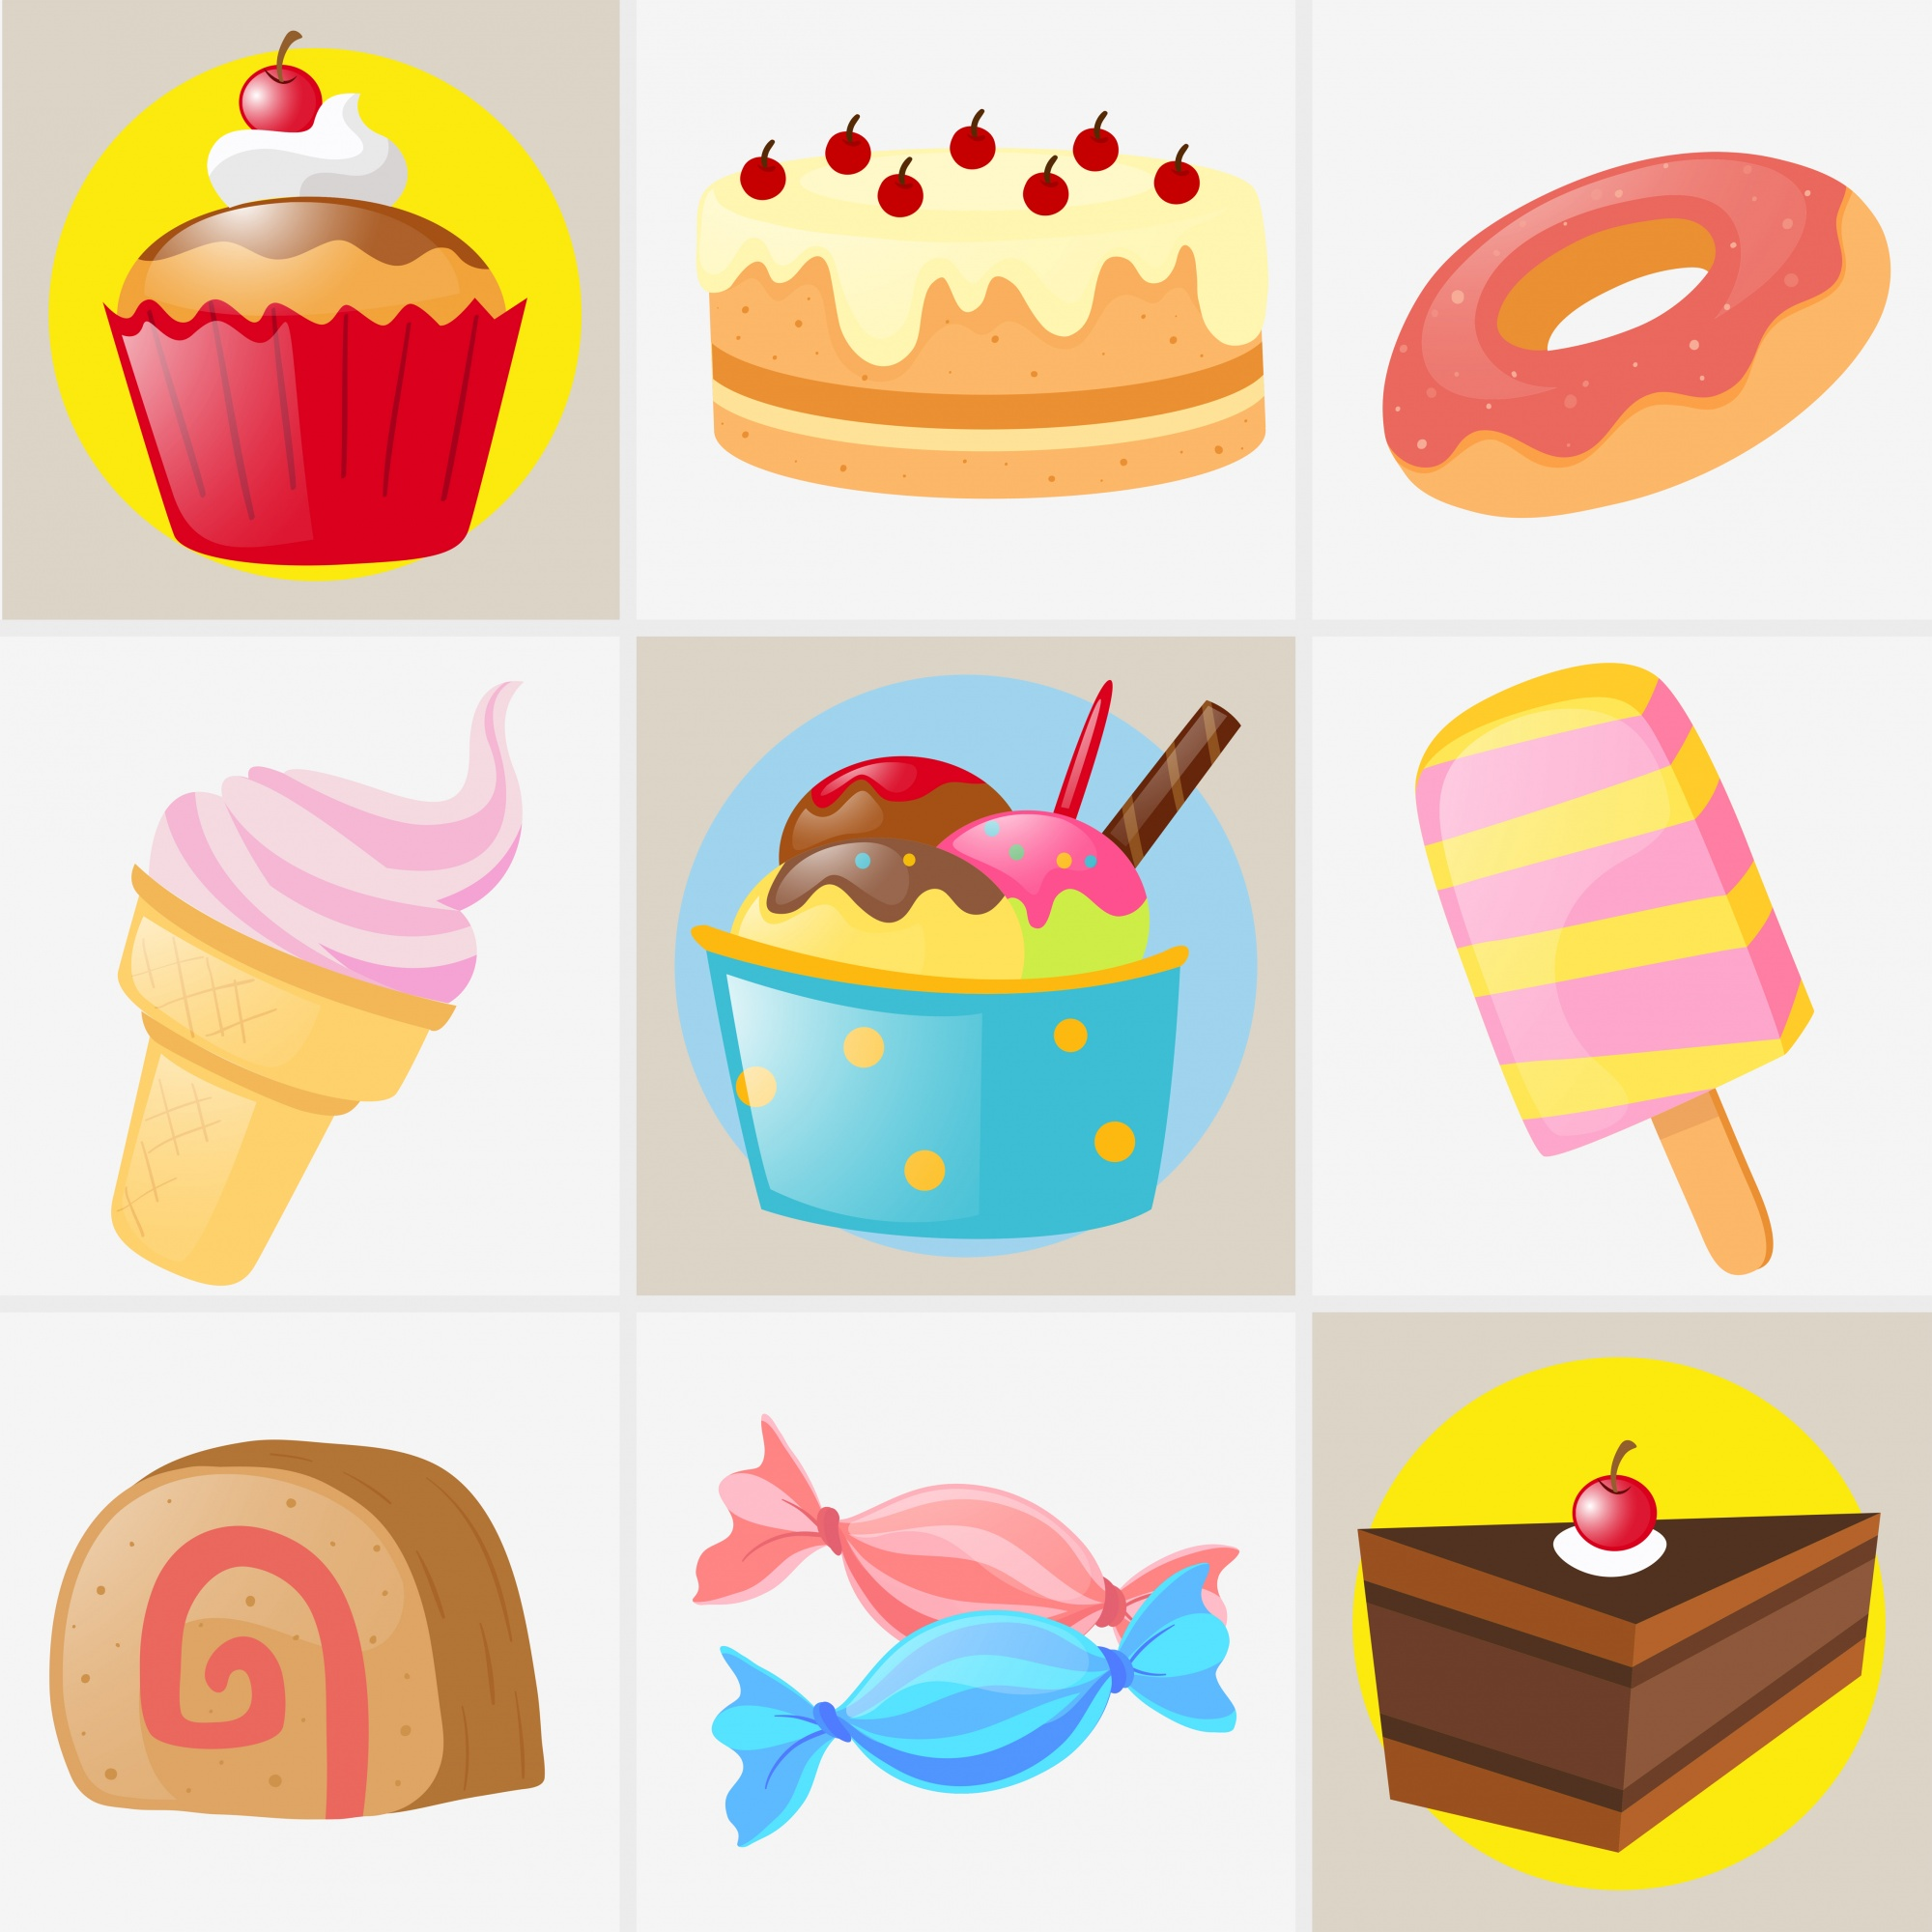 Different types of sweet desserts